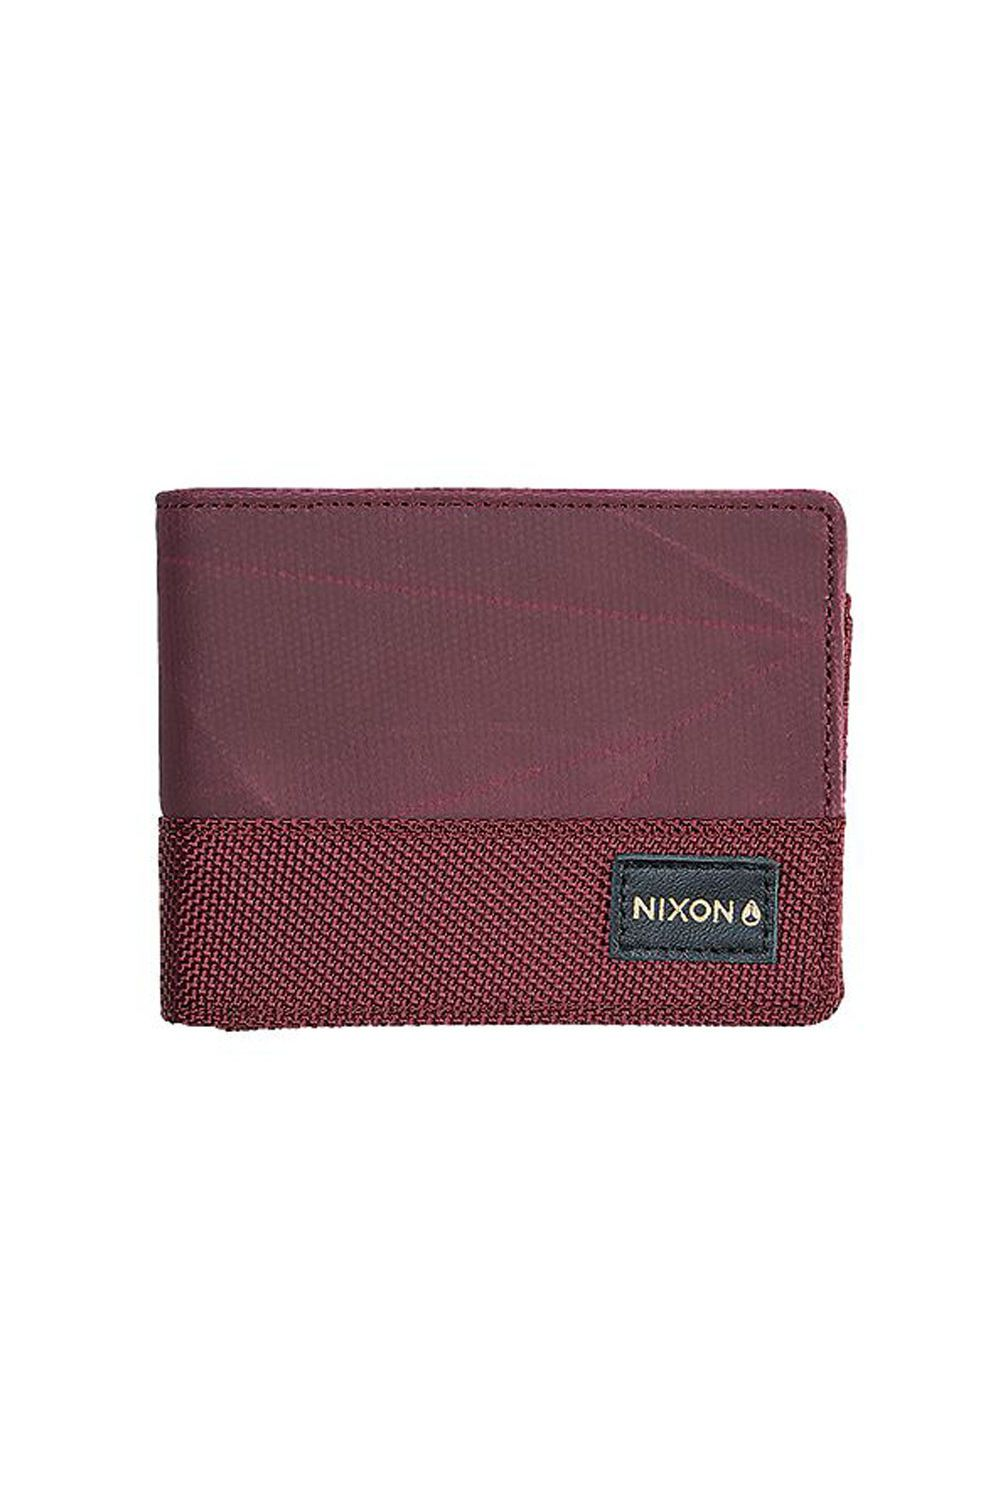 The Origami Bi-Fold Clip Wallet from Nixon. A collection tailored to the worldly and wise, these are the essentials of those who know.